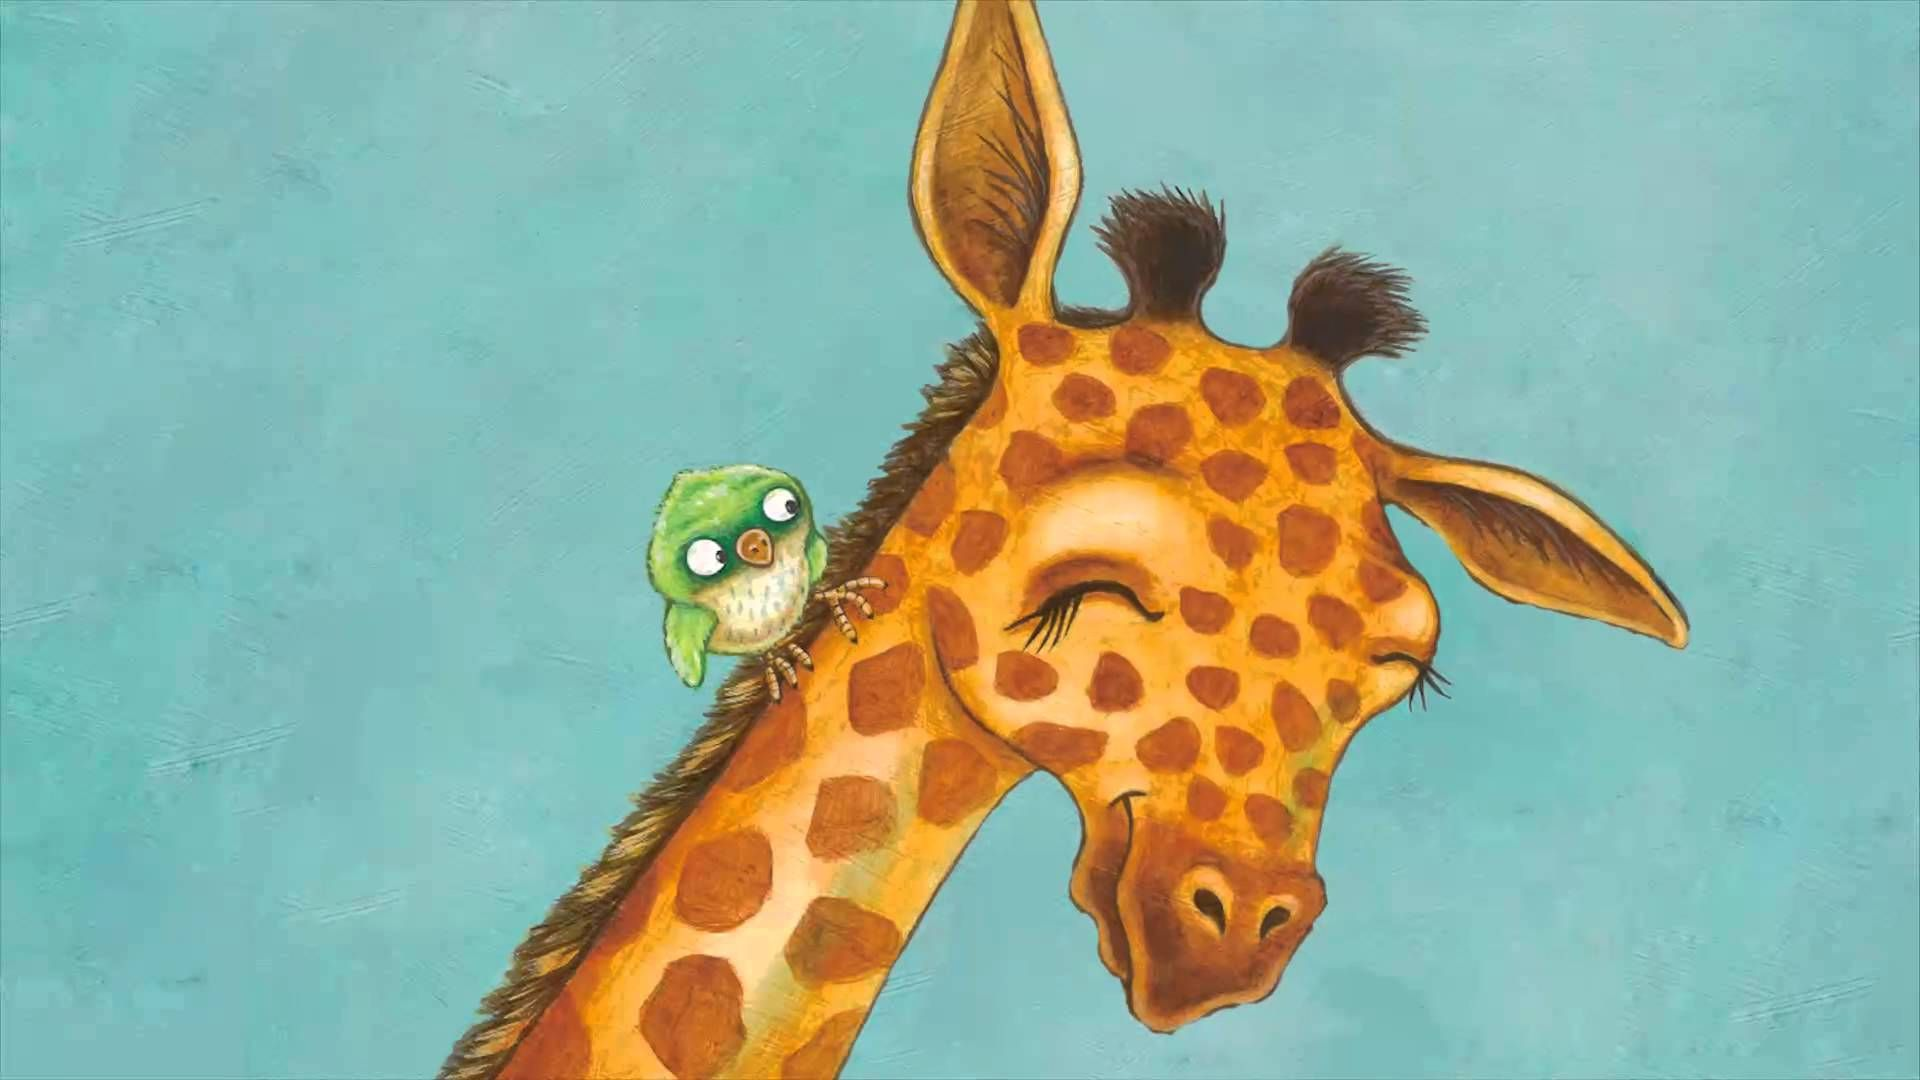 Giraffe Meets Bird Book Trailer | Rebecca Bender | Baby animals learn the ups and downs of friendship